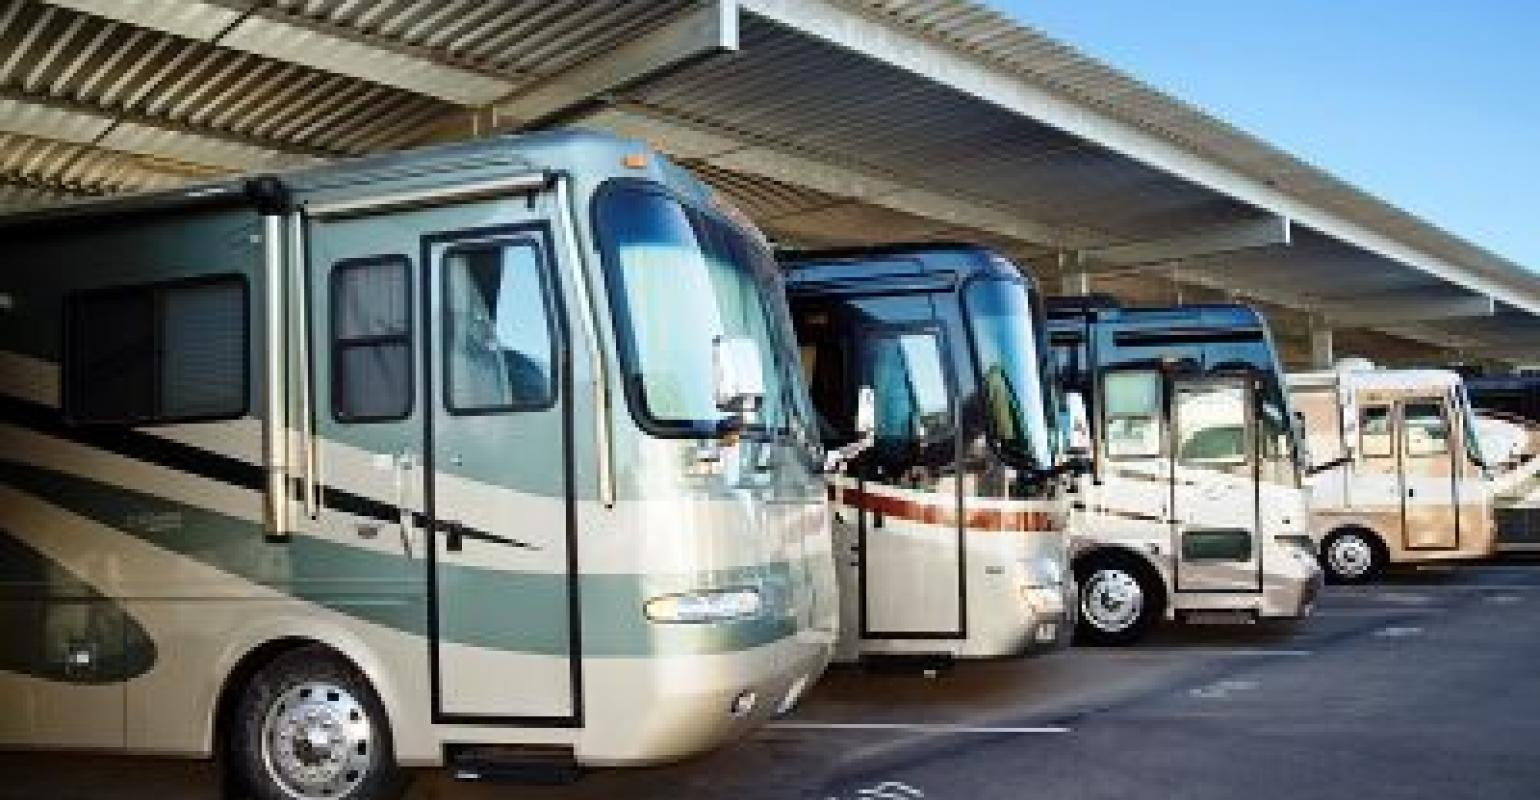 Rv Rental London Ontario >> Maximizing Revenue From Boat And Rv Storage Attracting